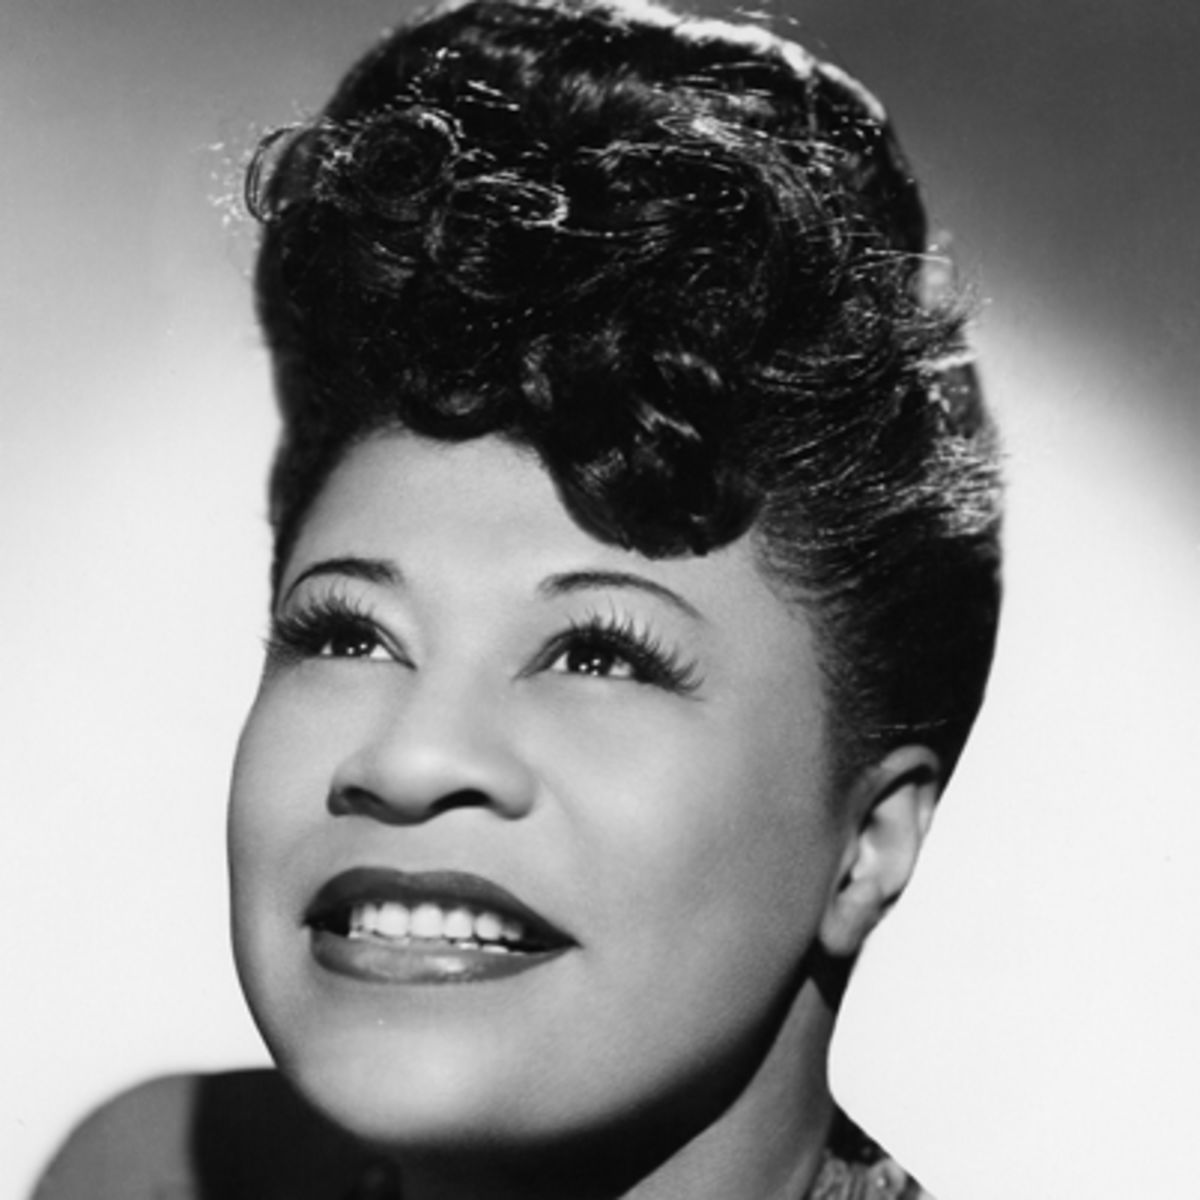 Ella Fitzgerald - Jazz Singer often referred to as the first lady of song.